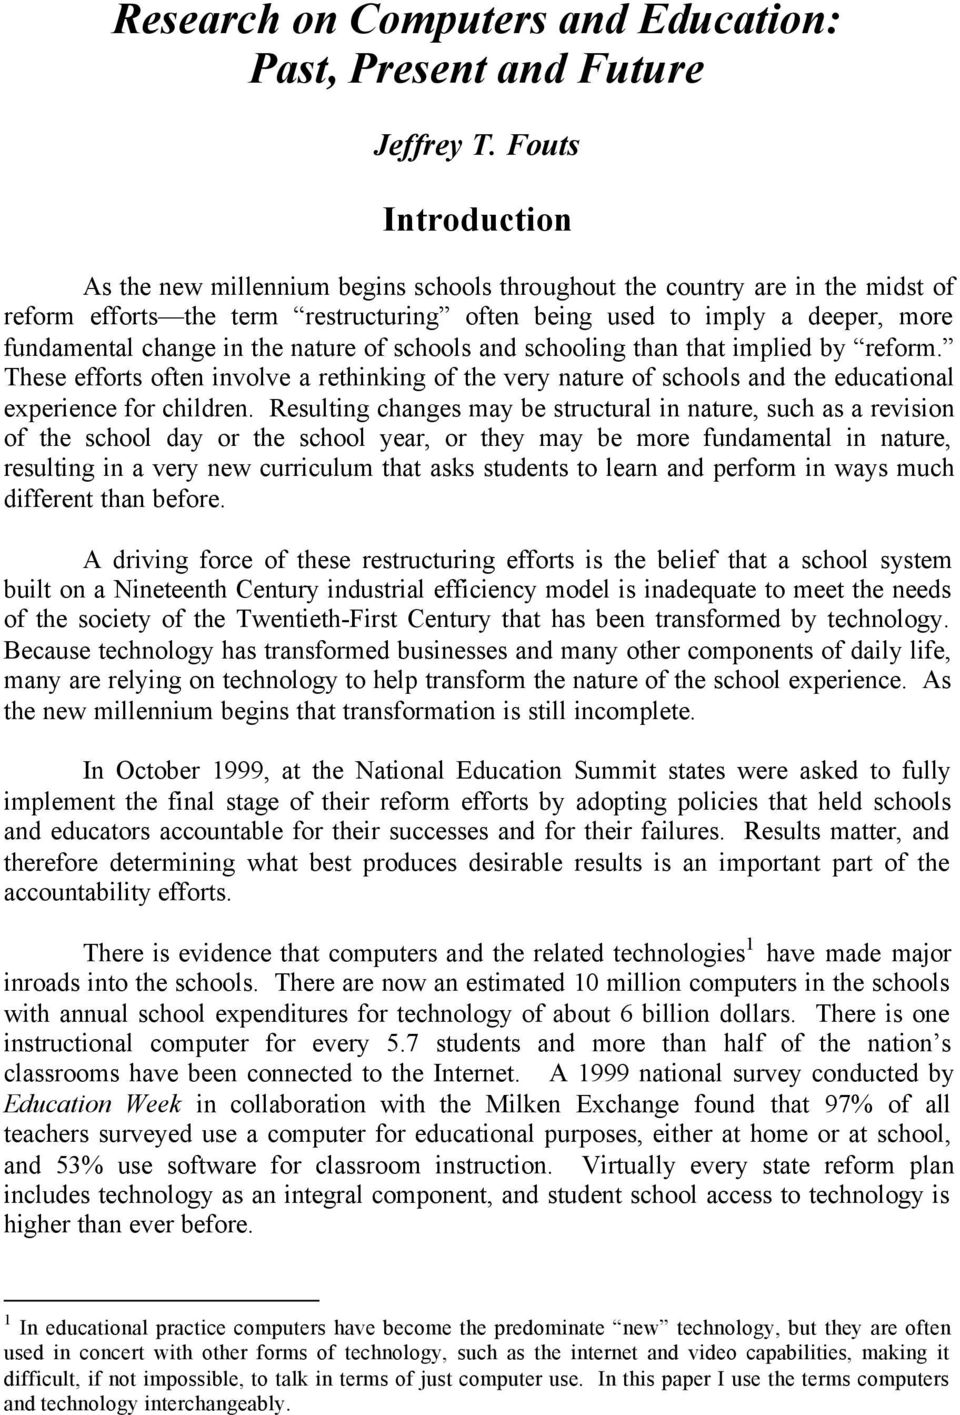 the nature of schools and schooling than that implied by reform. These efforts often involve a rethinking of the very nature of schools and the educational experience for children.